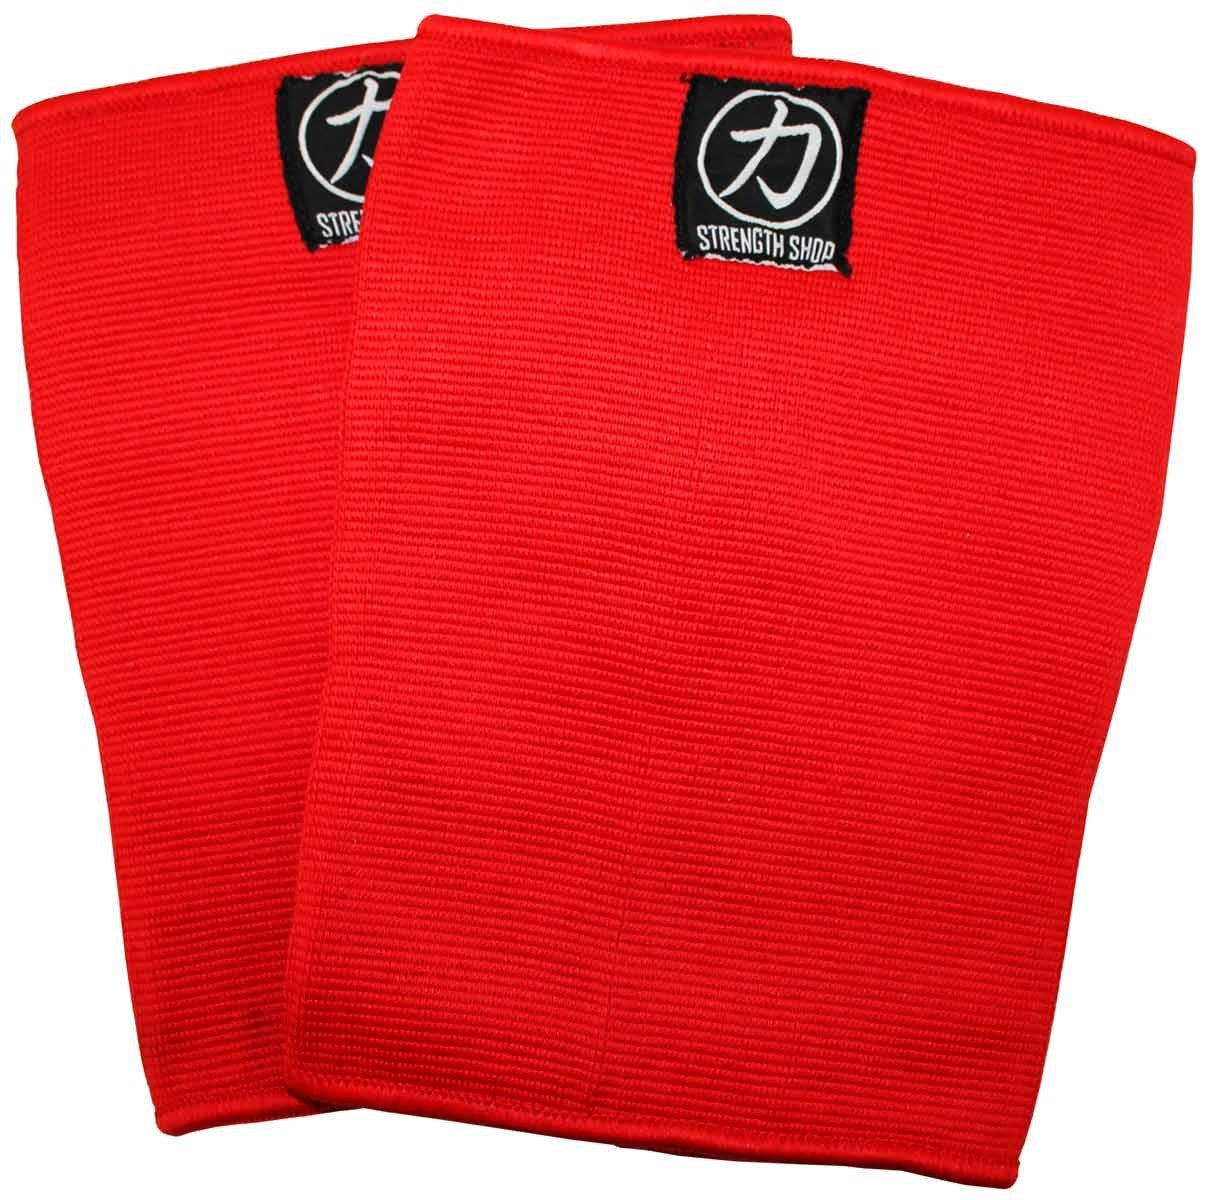 Strength Shop Thor Knee Sleeves - Double Ply - Red - Strength Shop USA